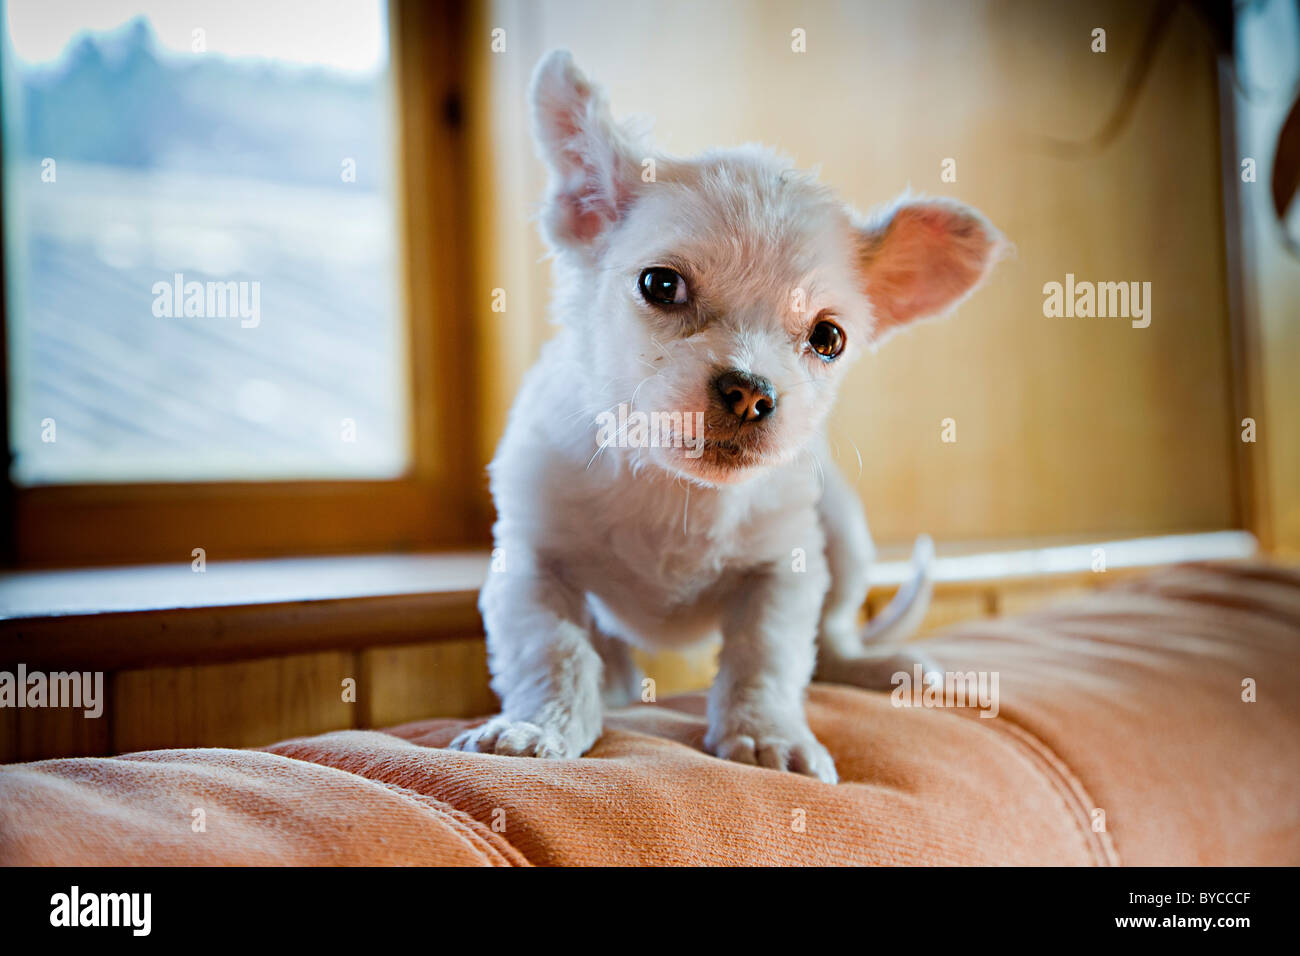 Small white Chihuahua puppy or young dog in Lijiang, Yunnan Province, China. JMH4753 - Stock Image